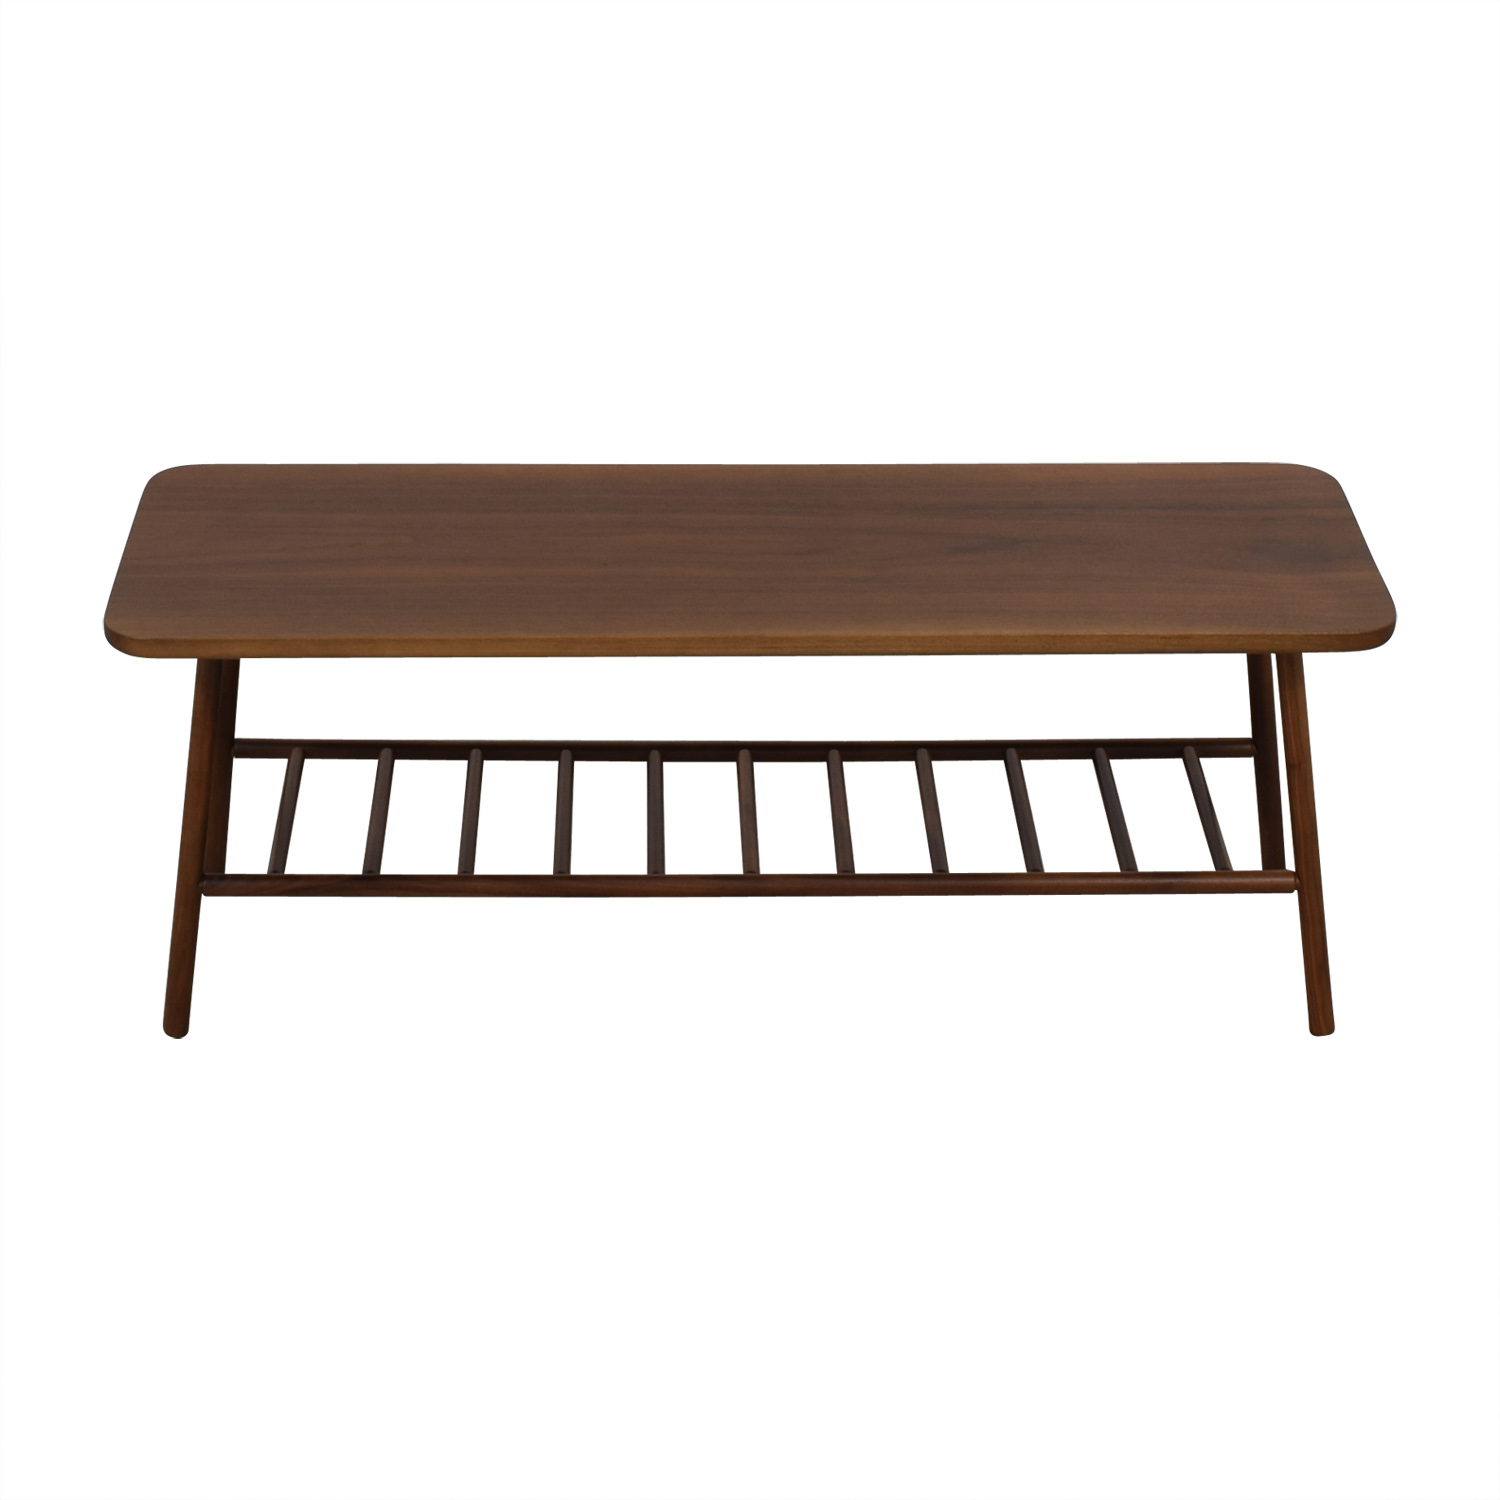 Hedge House Furniture Hedge House Furniture Walnut Coffee Table dimensions